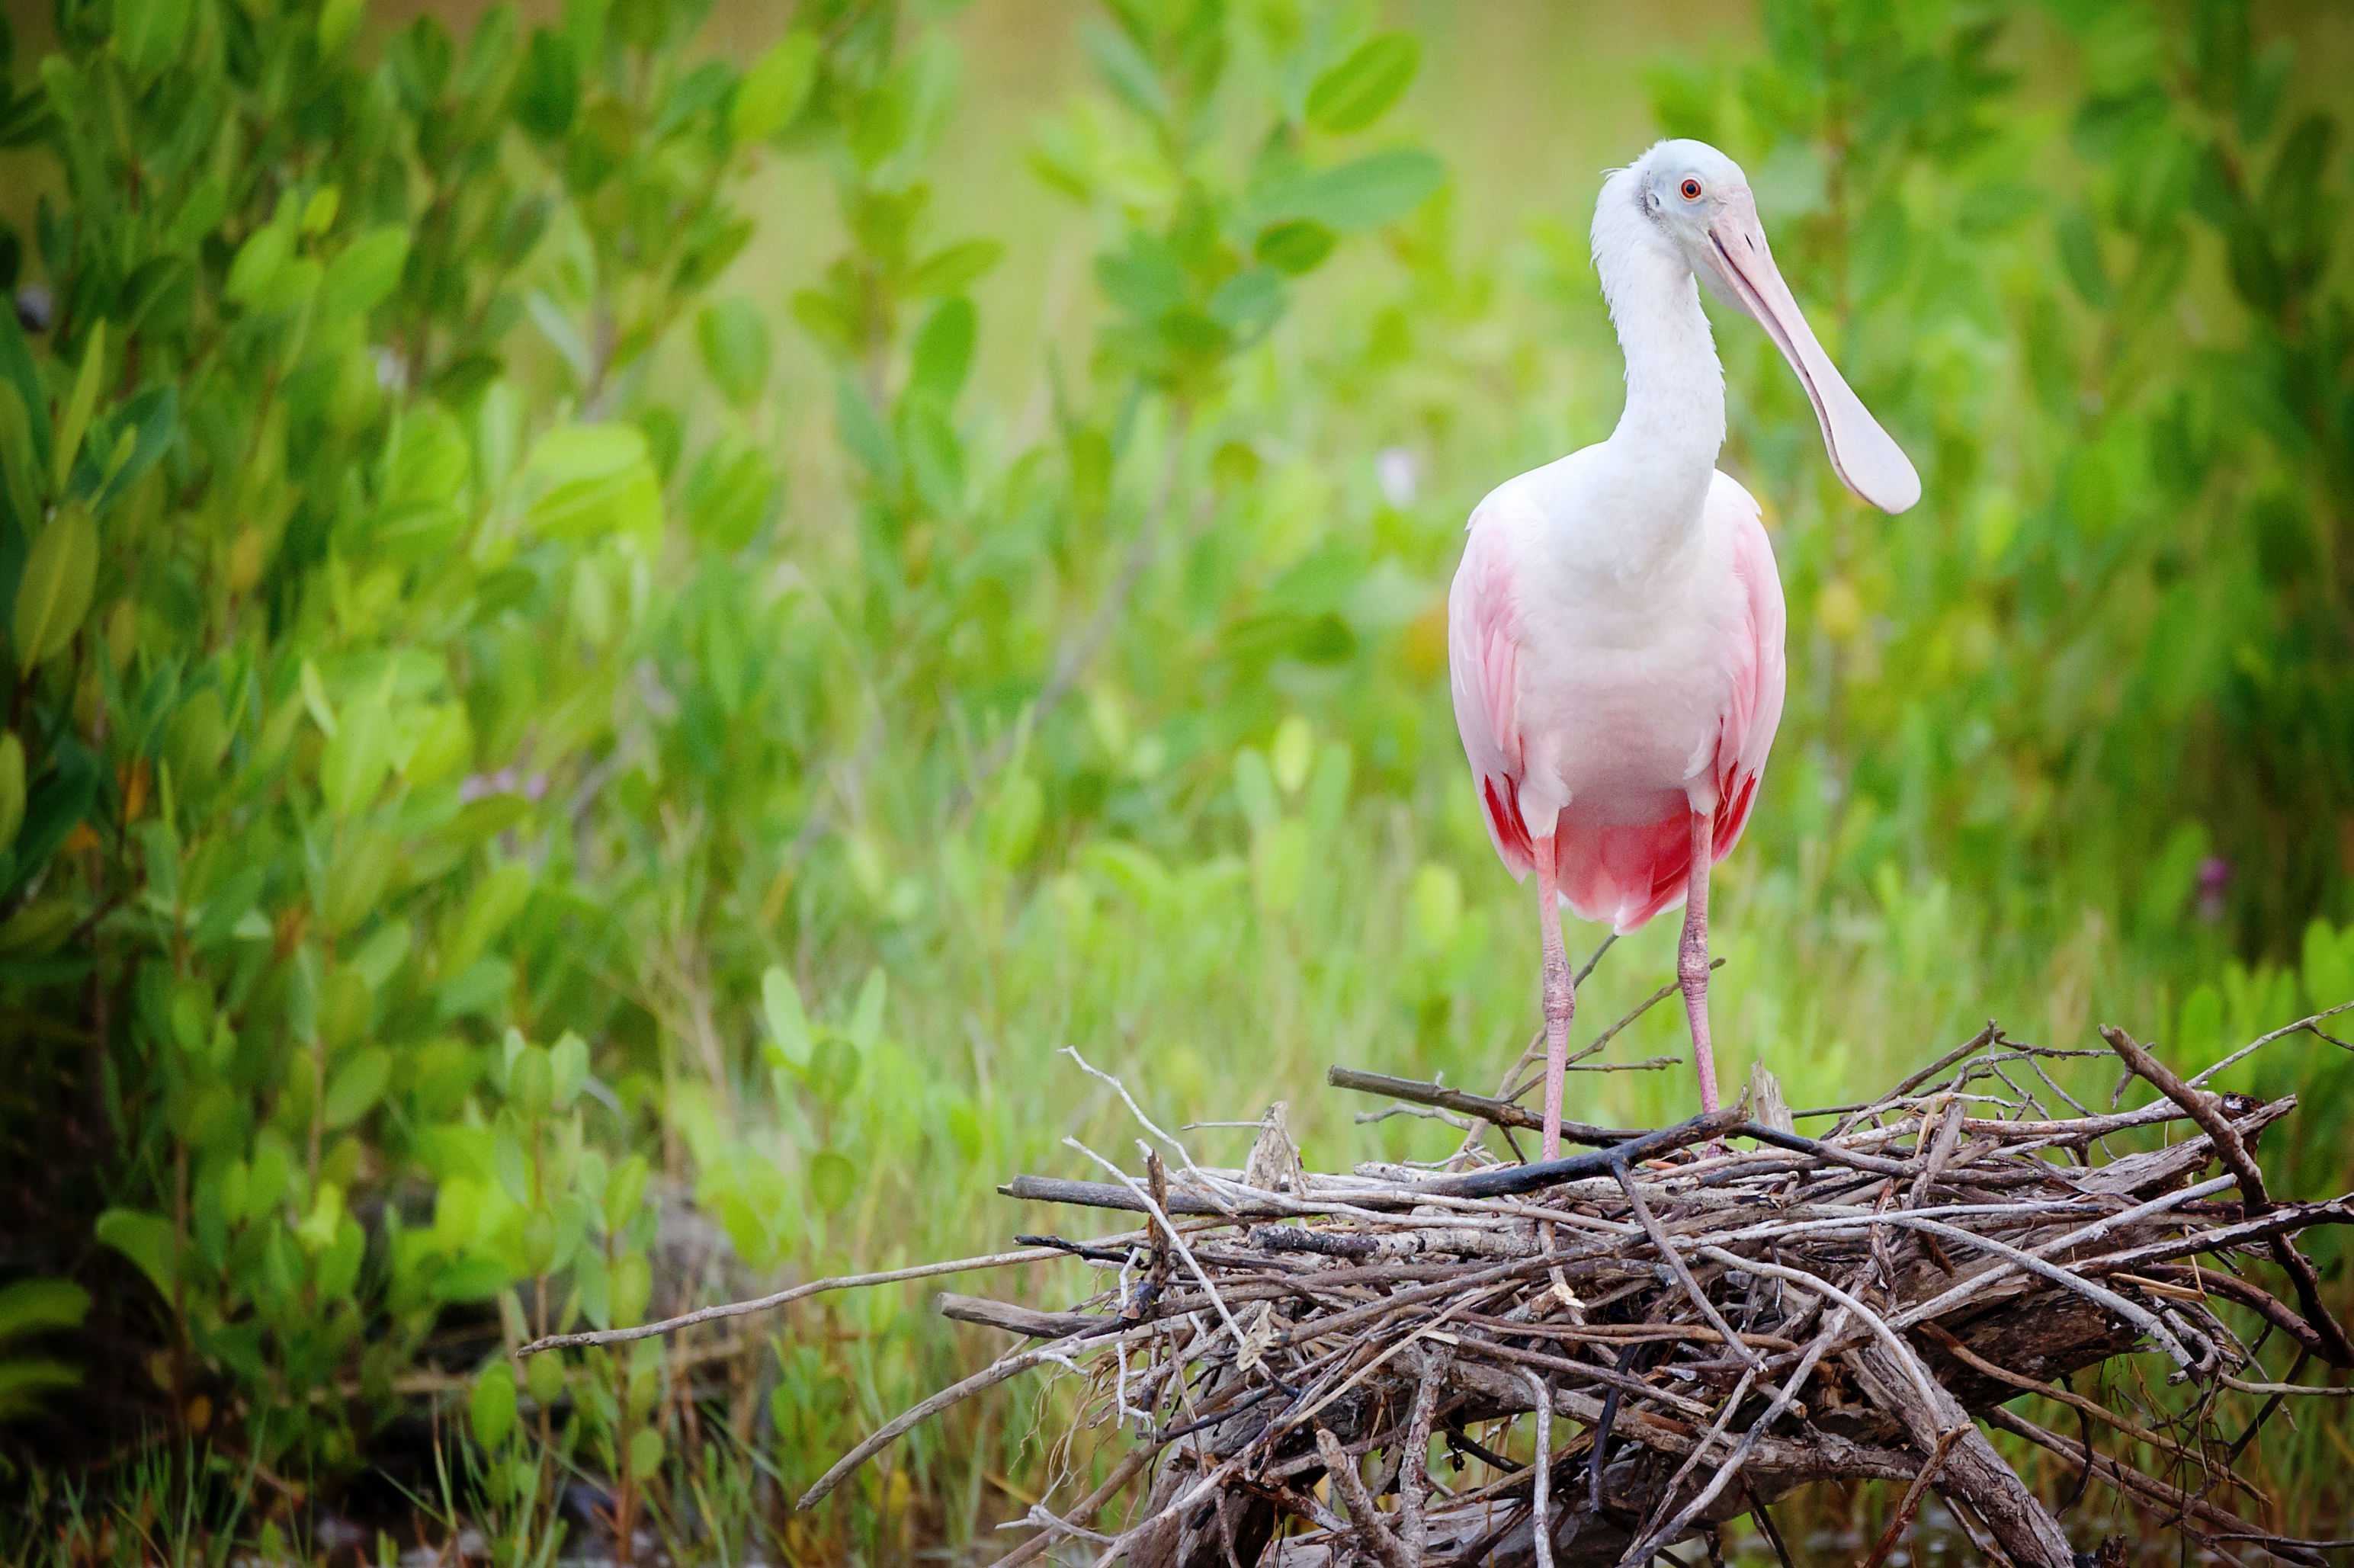 Florida Everglades See Record Number of Wading Bird Nests